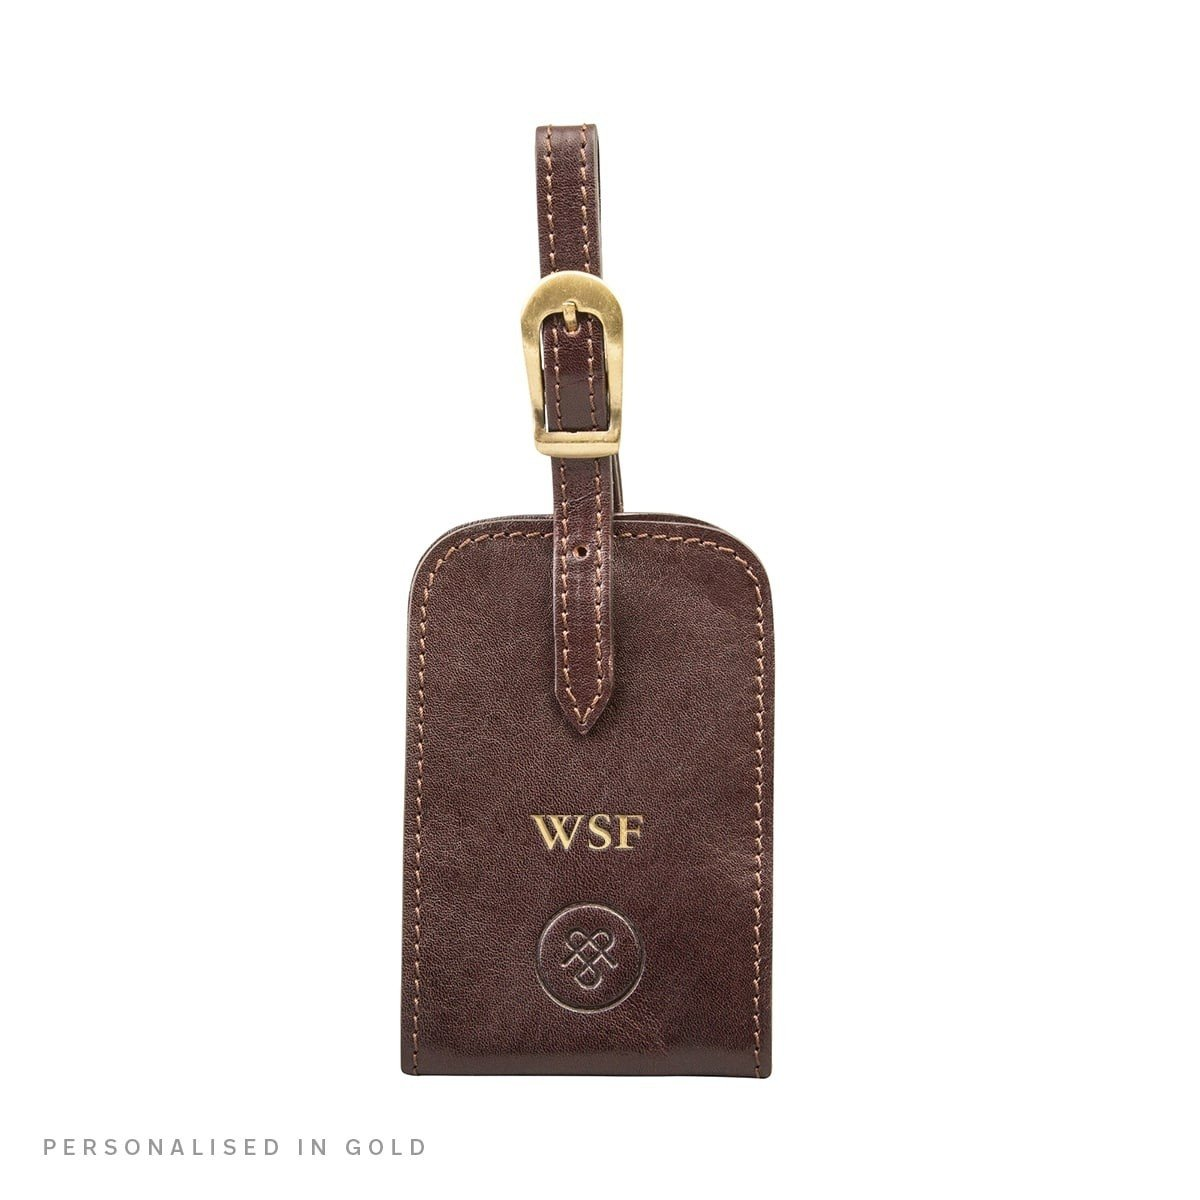 Maxwell Scott Personalized Luxury Brown Leather Bag Tag (The Ledro)